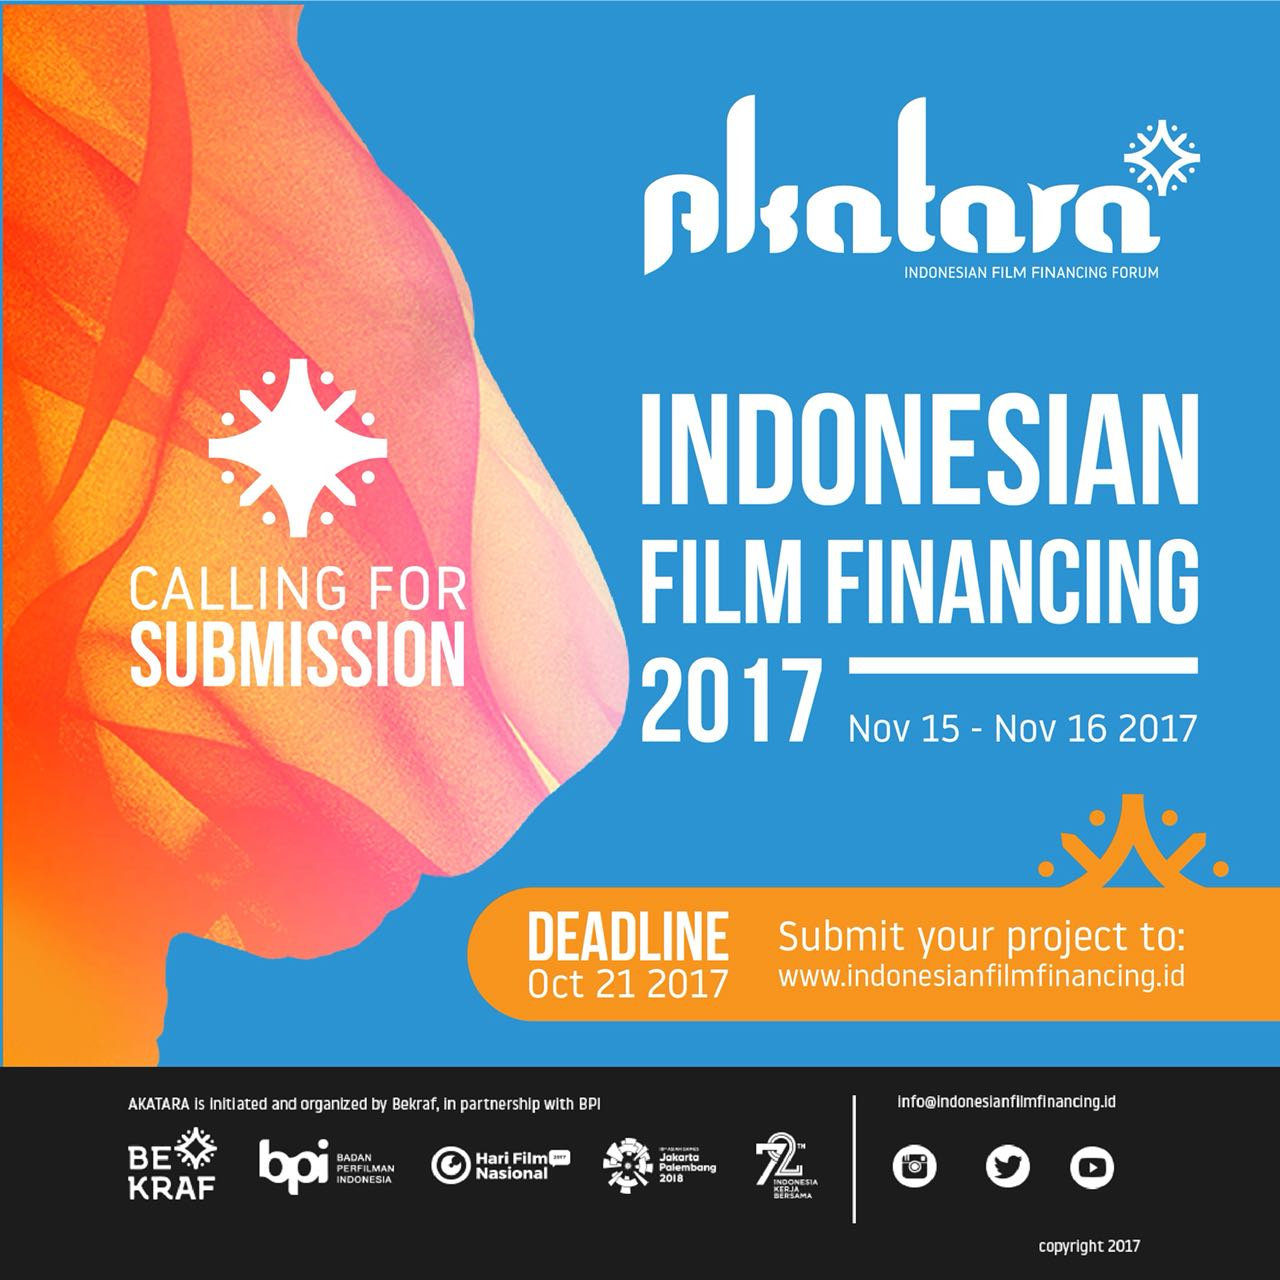 Akatara Indonesia Film Financing